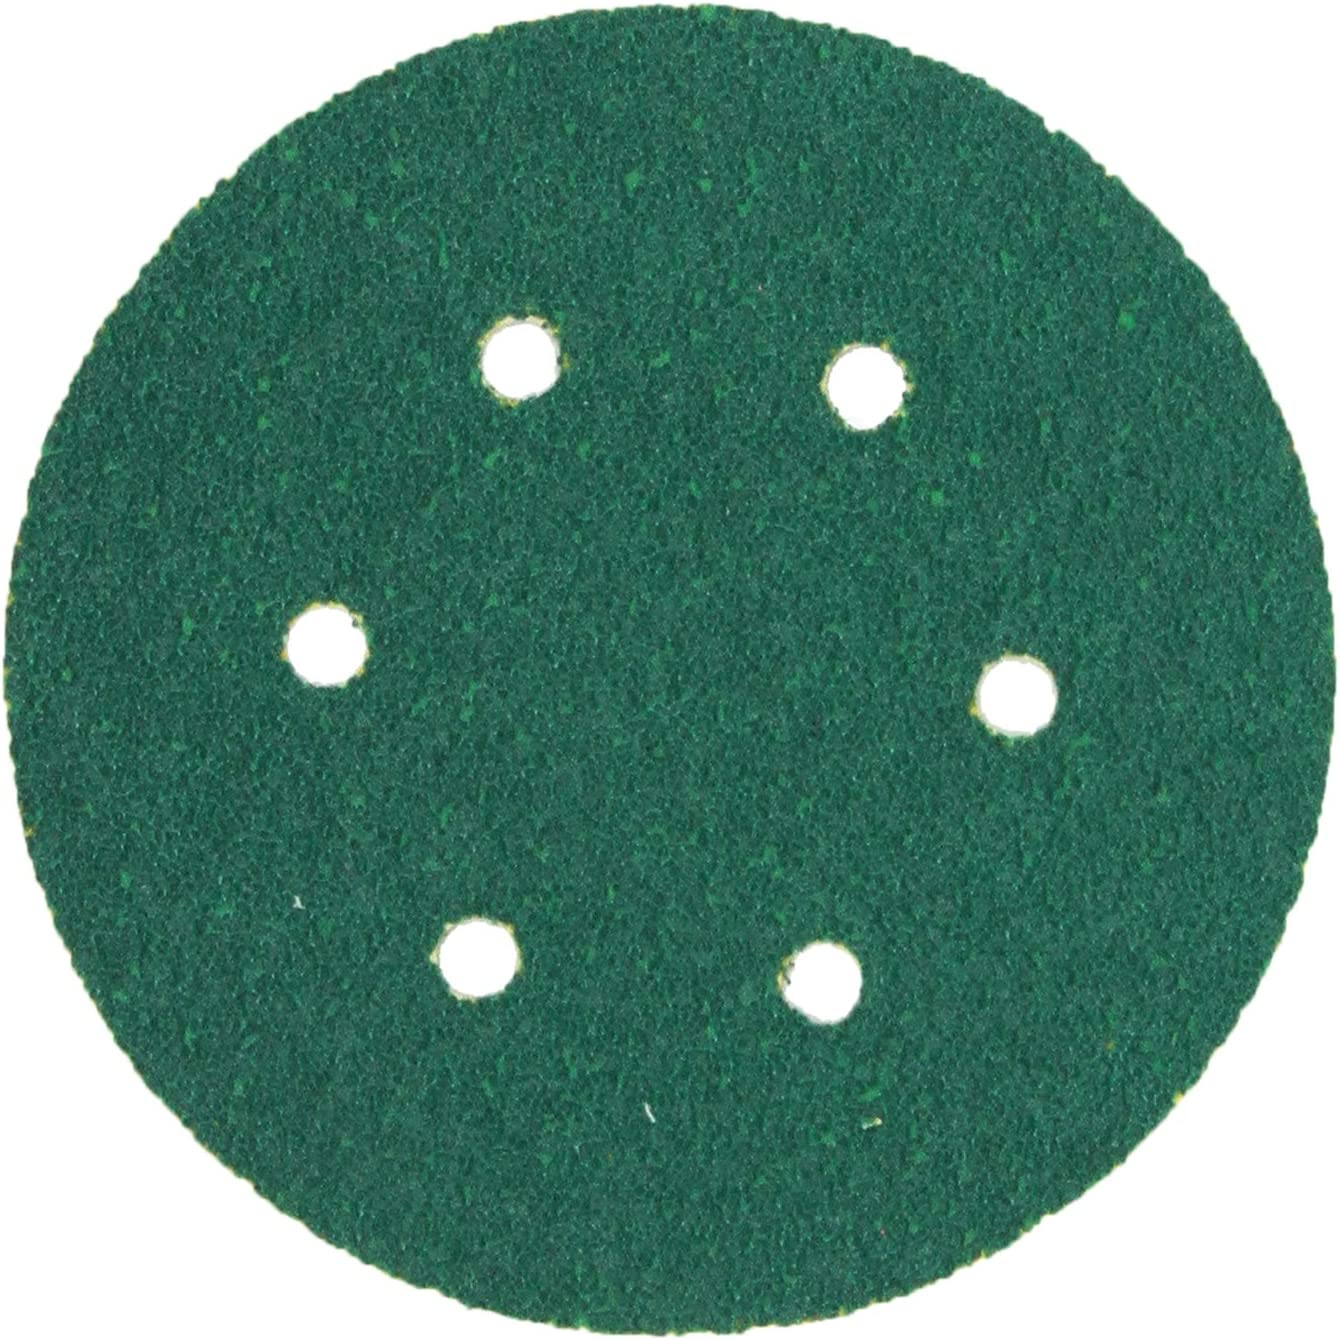 01668 6 in 100 discs per carton 3M Green Corps Stikit Production Disc Dust Free 36